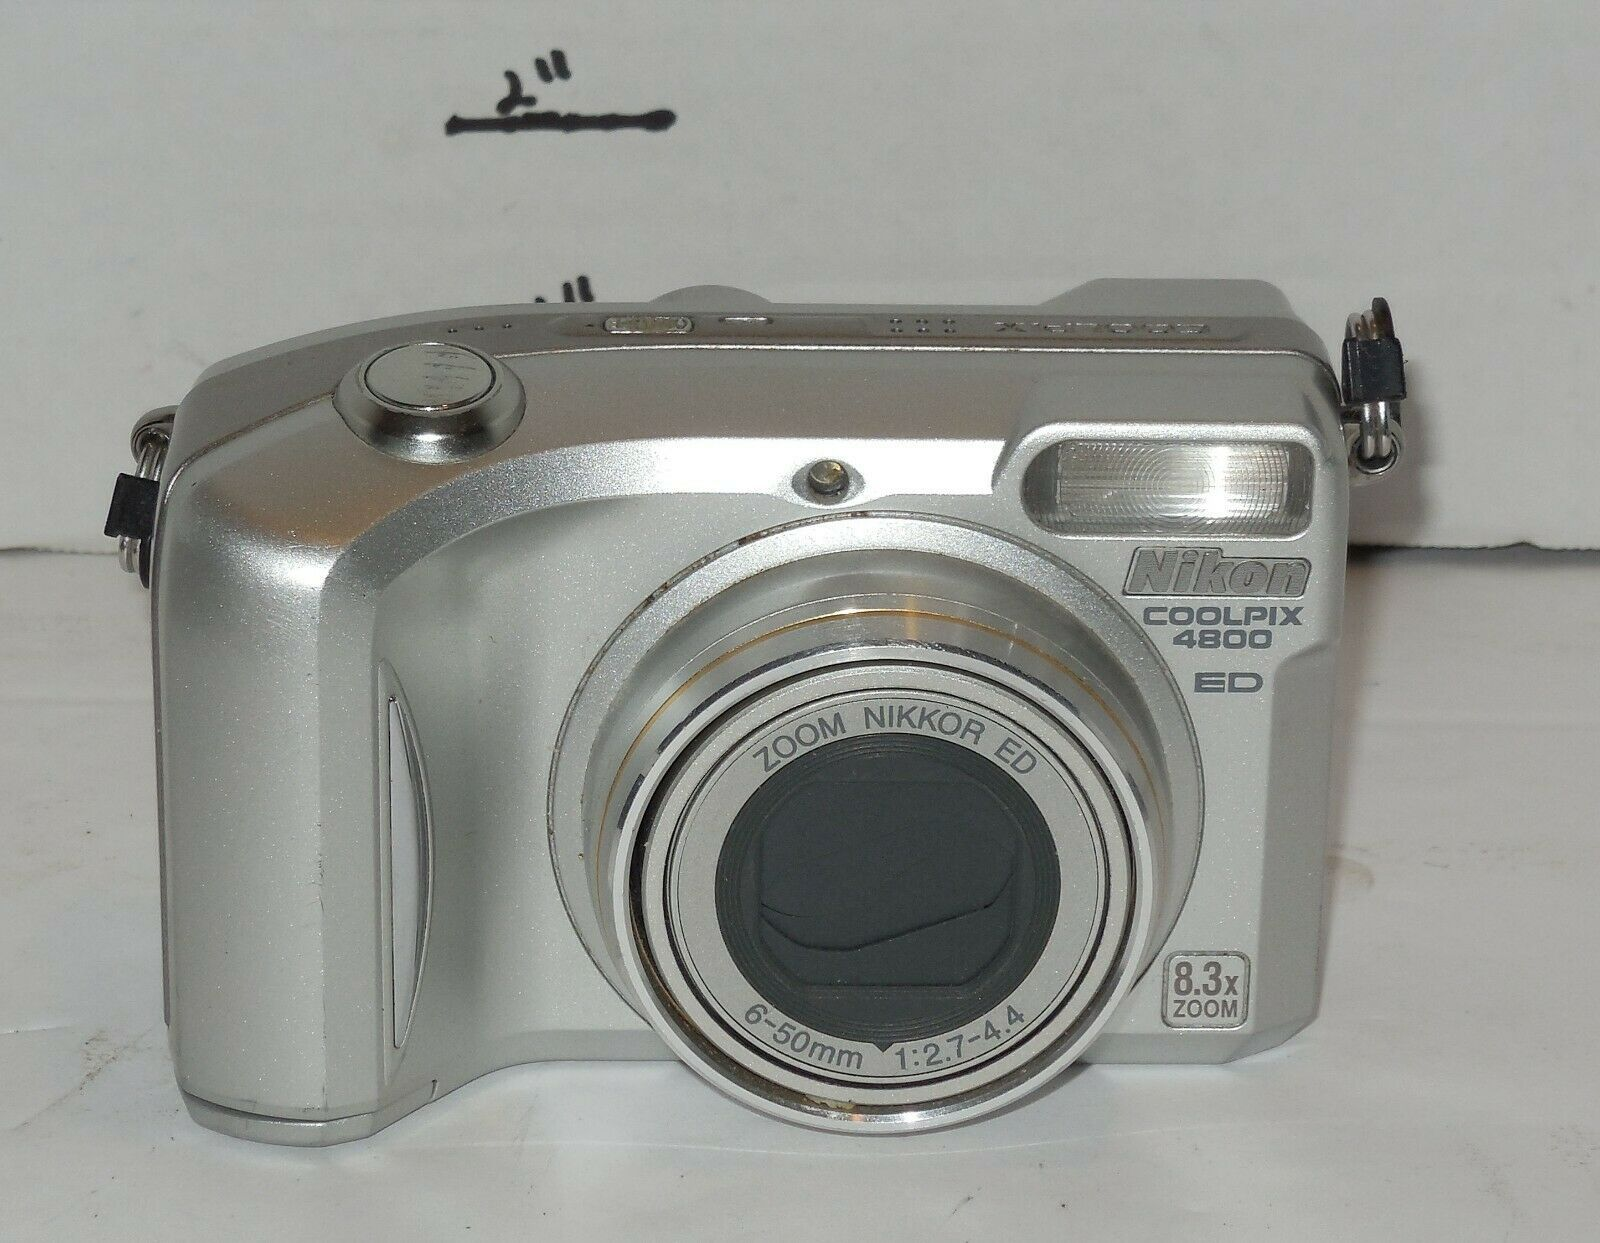 Primary image for Nikon COOLPIX 4800 4.0MP Digital Camera - Silver